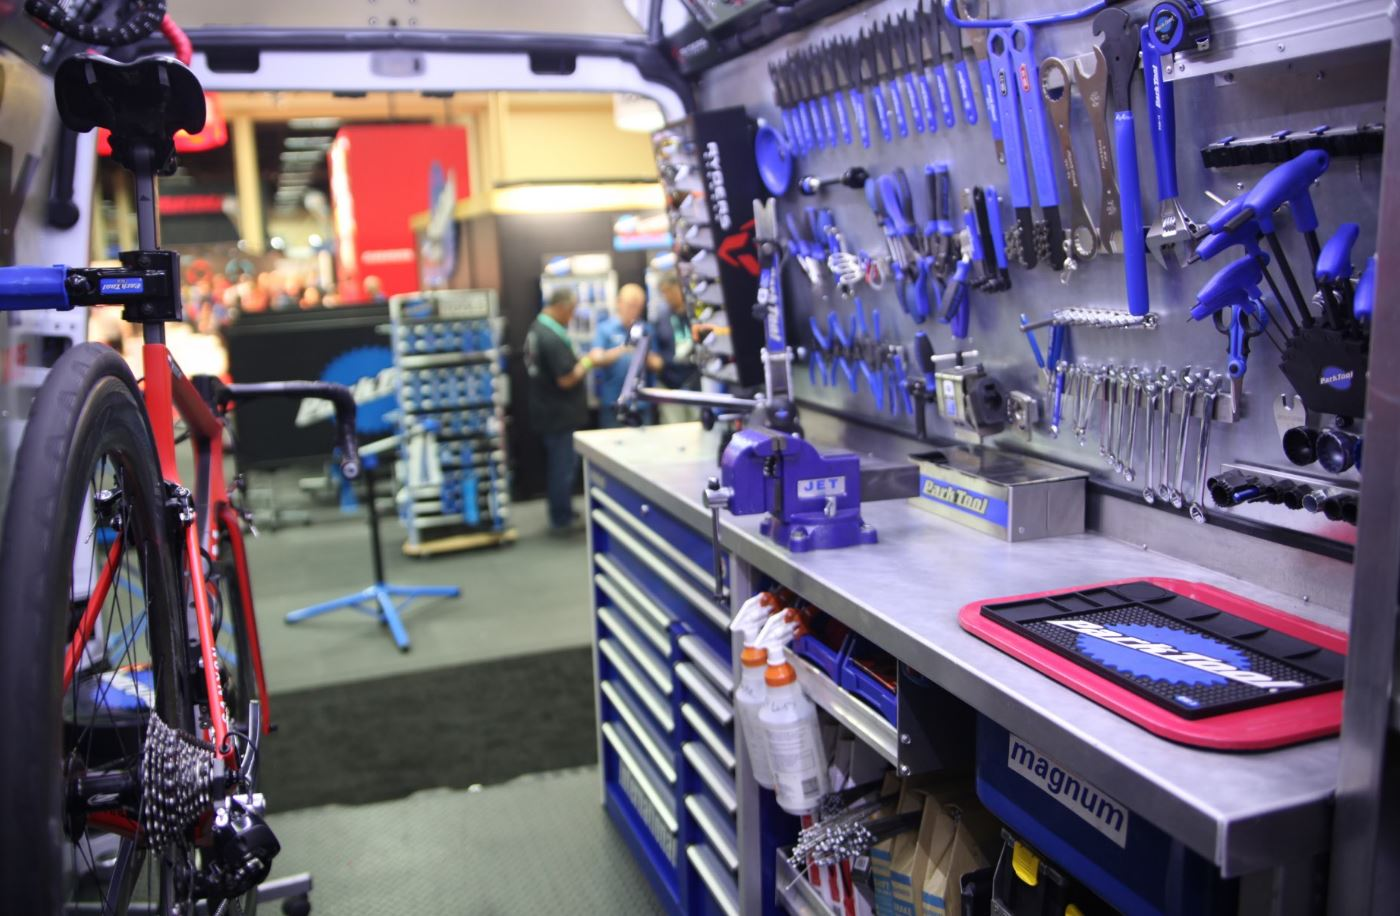 Mobile mechanics: a sustainable business for the bicycle retailer?